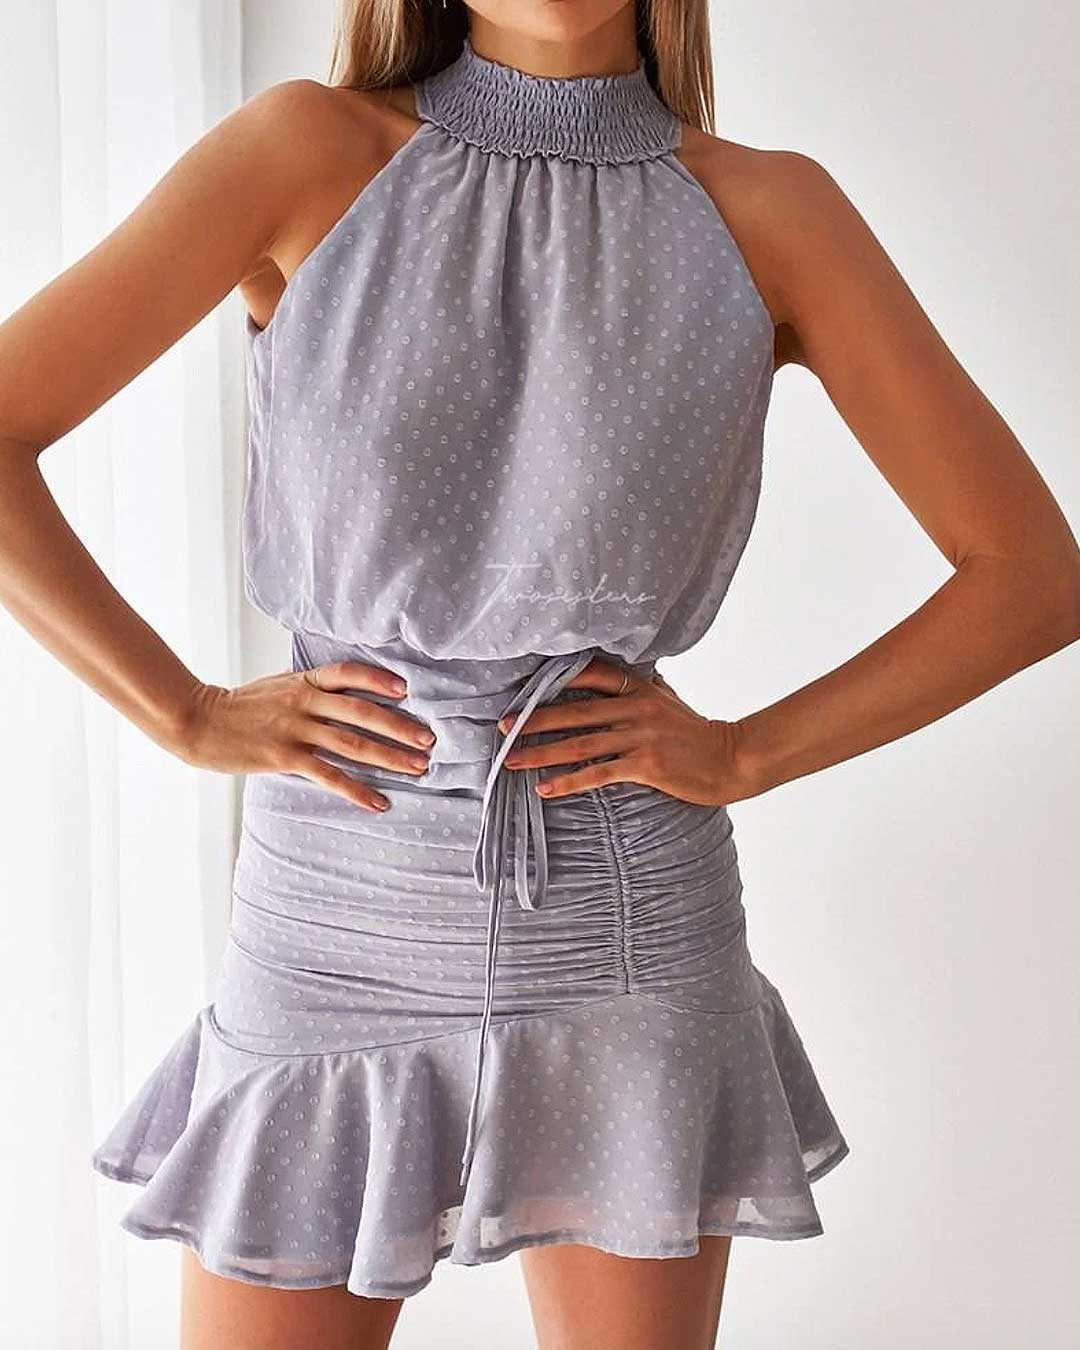 Pip Dress - Frosted Grey